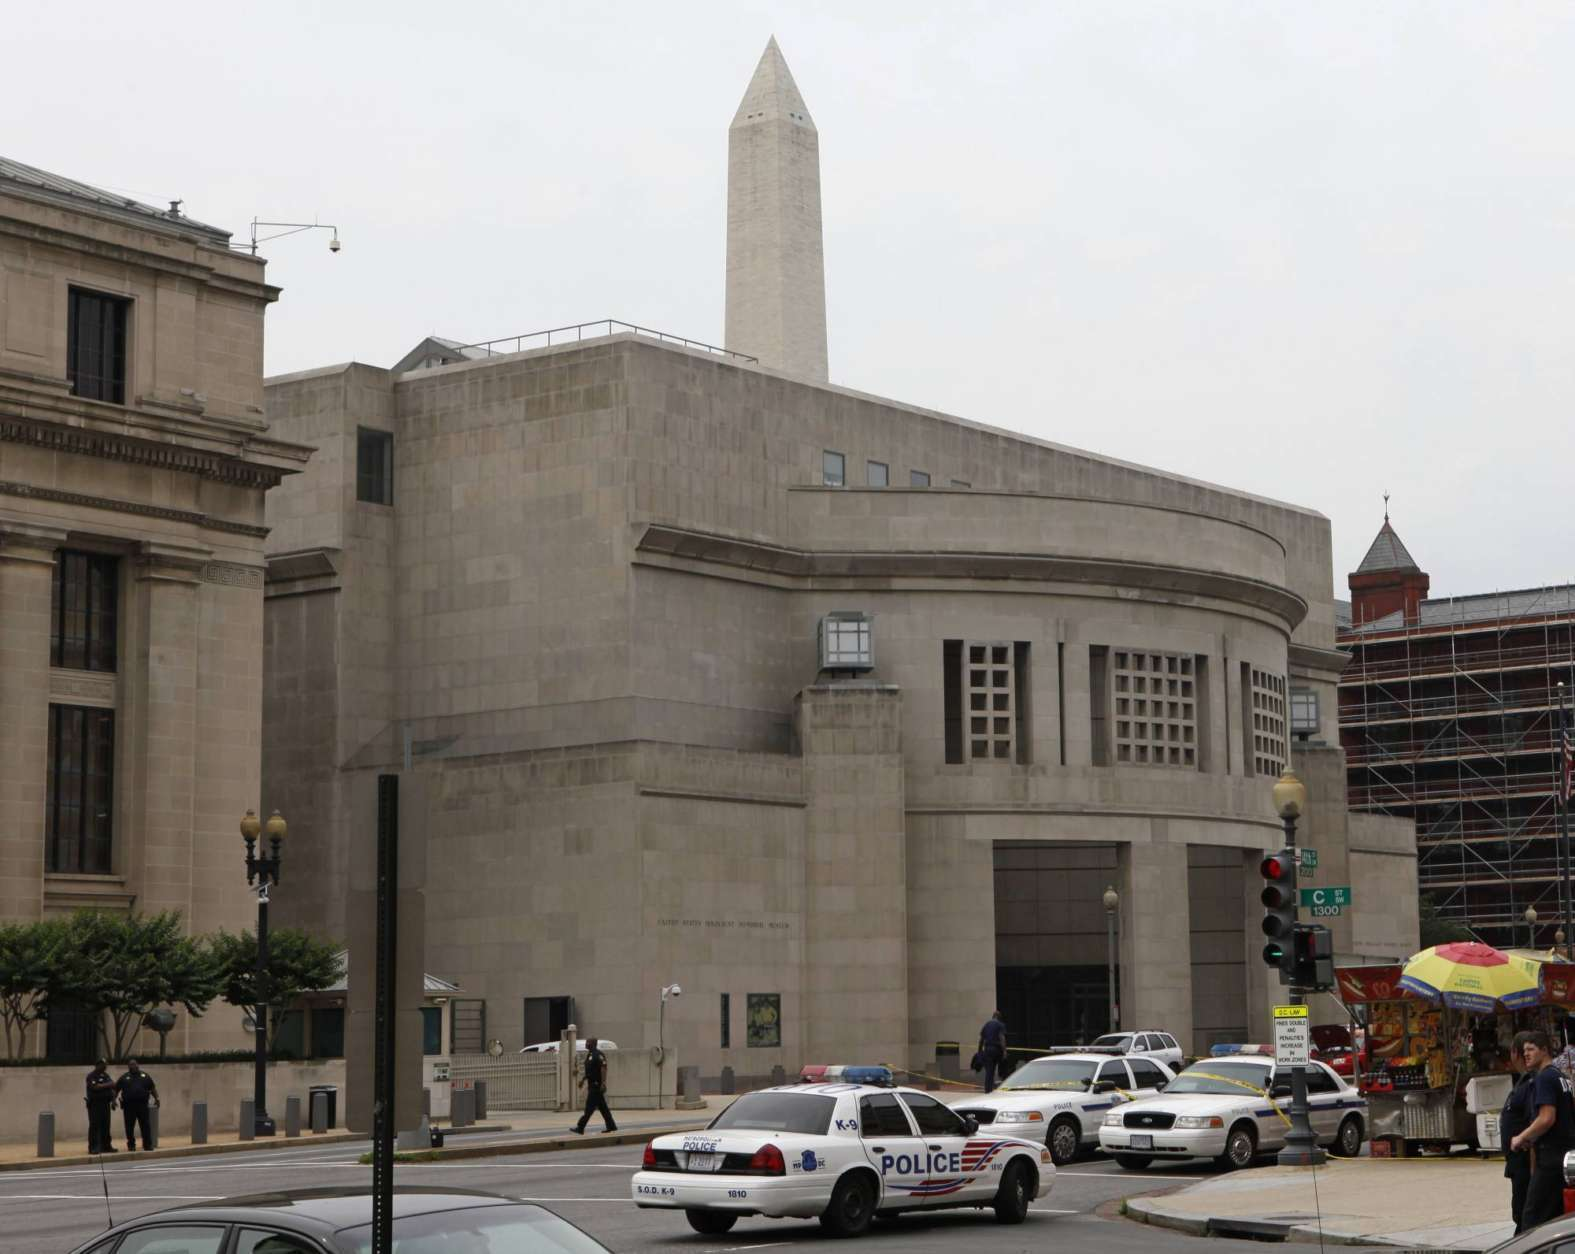 FILE – In this June 10, 2009, file photo, the Washington Monument looms over the U.S. Holocaust Memorial Museum, after a shooting that day that left a security officer dead and the gunman wounded in Washington. (AP Photo/Charles Dharapak, File)